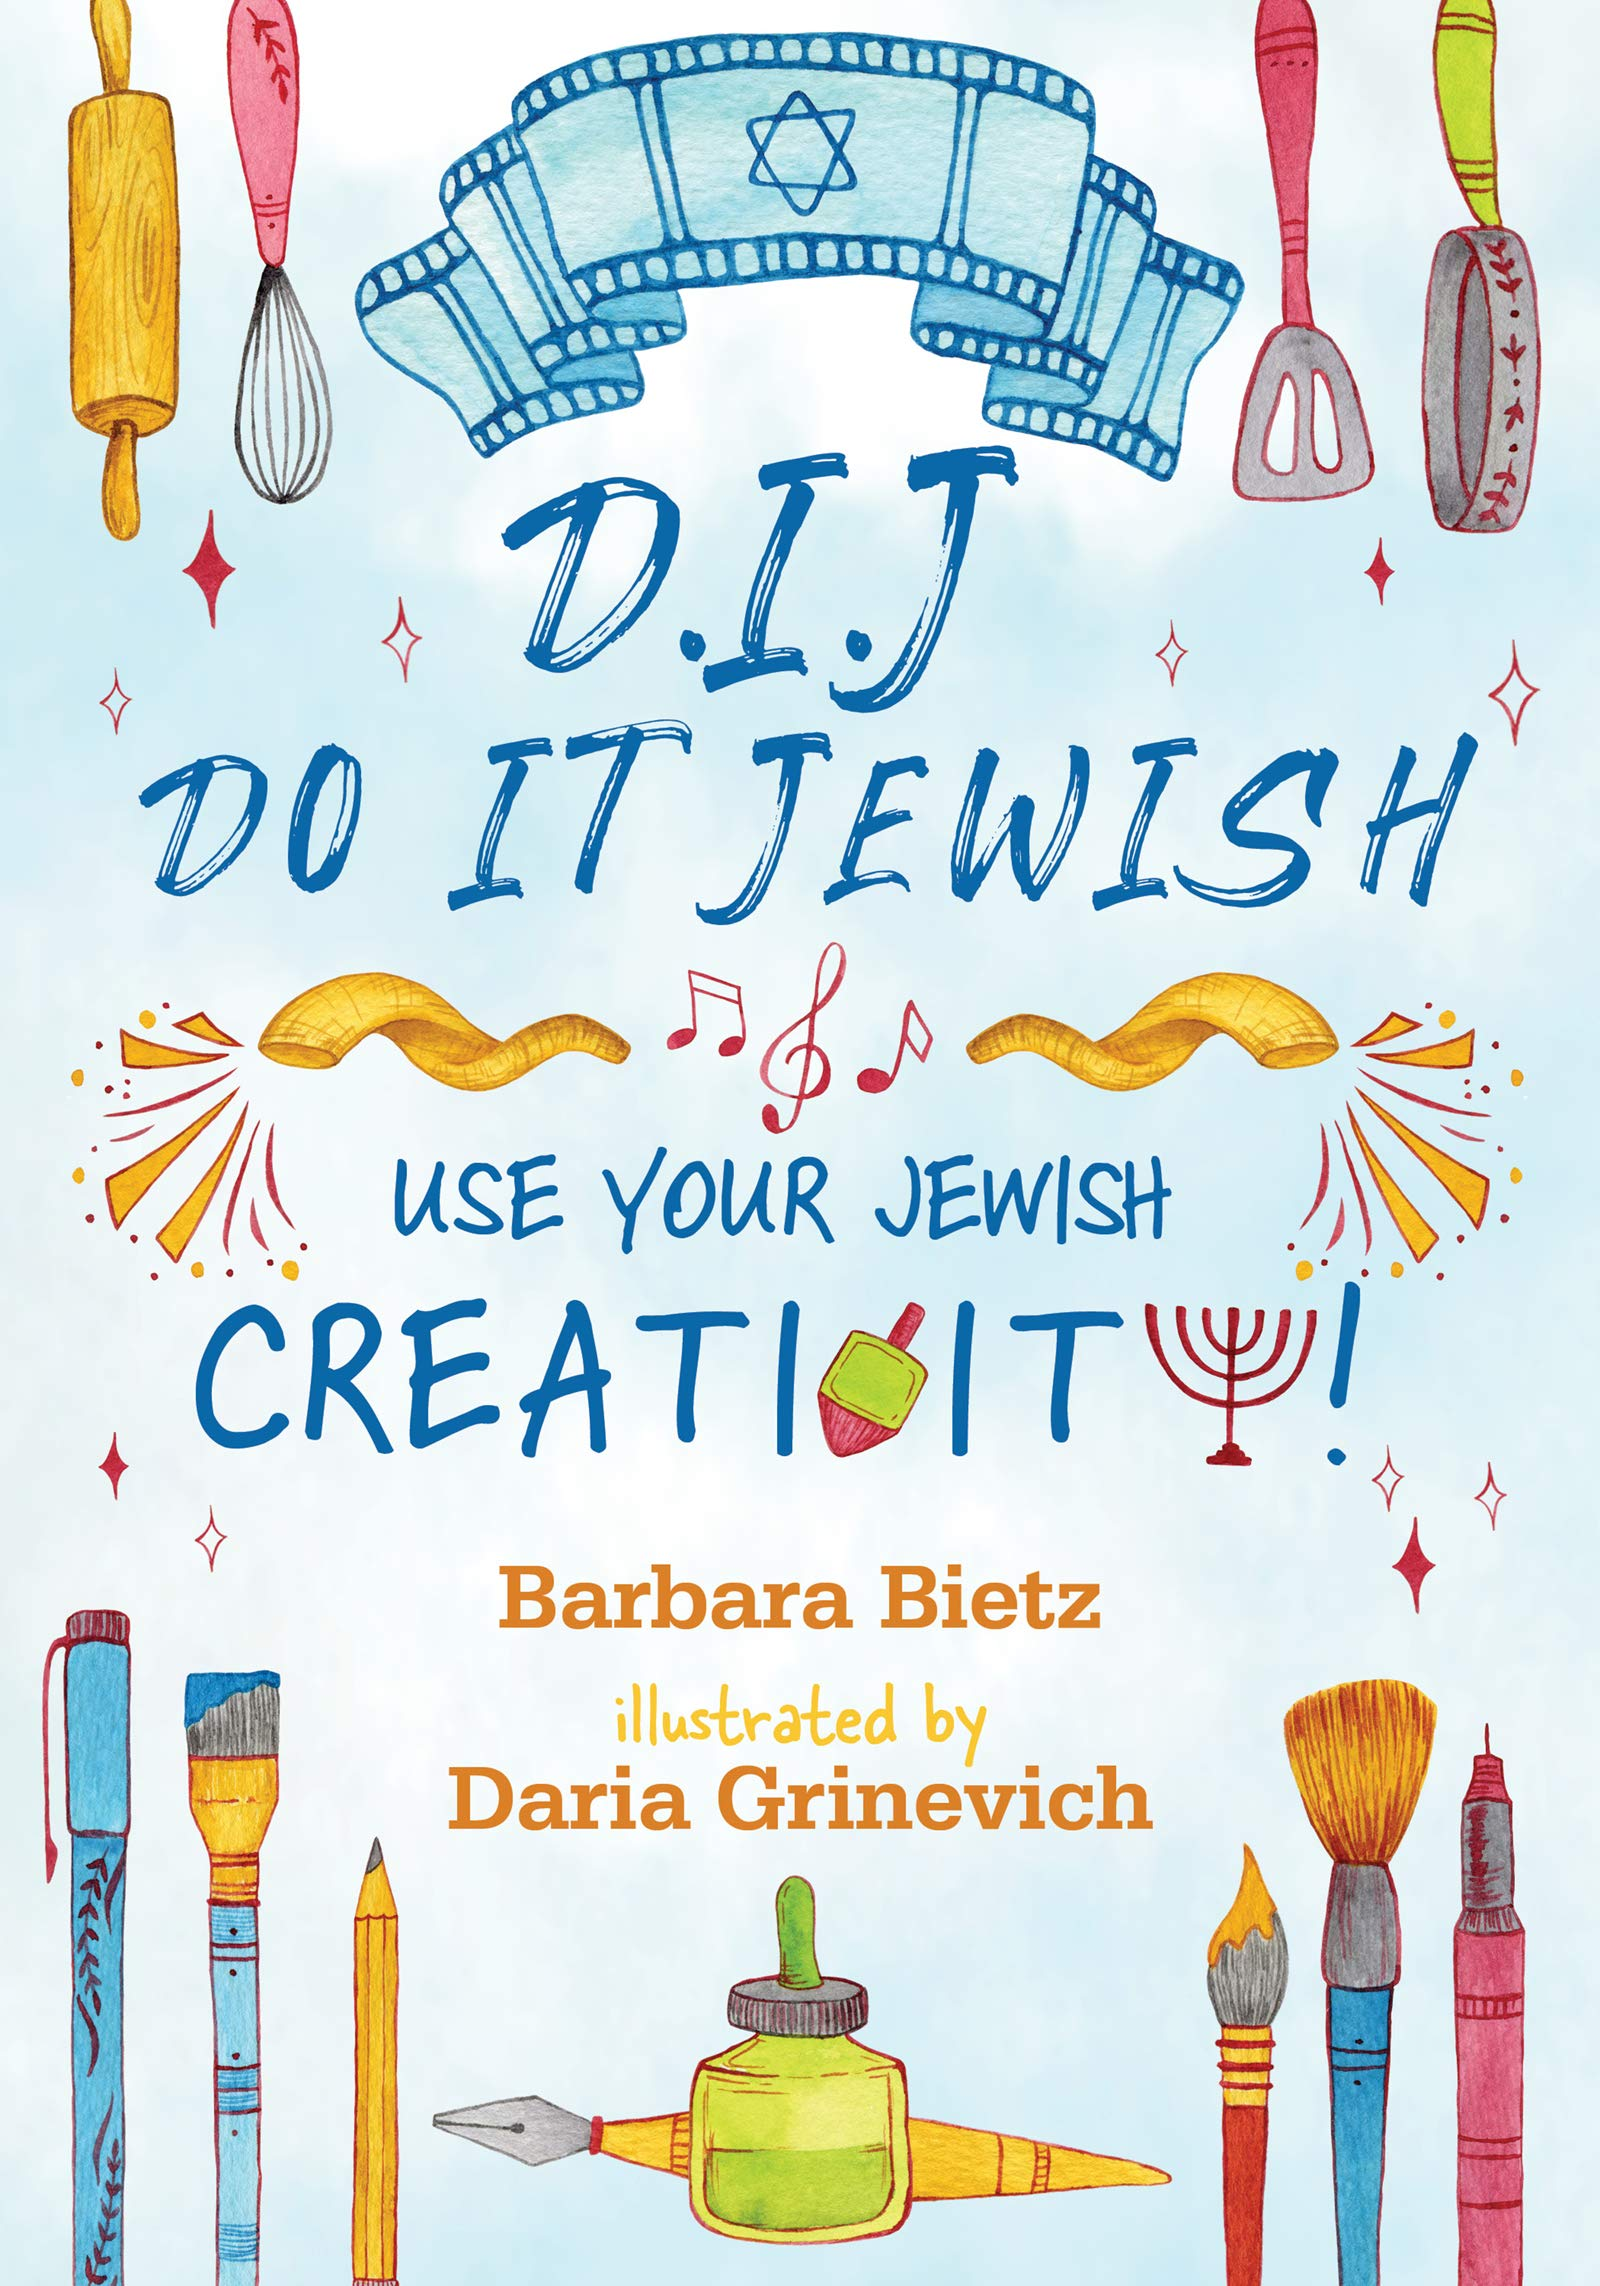 DIJ-Do It Jewish: Use Your Jewish Creativity!